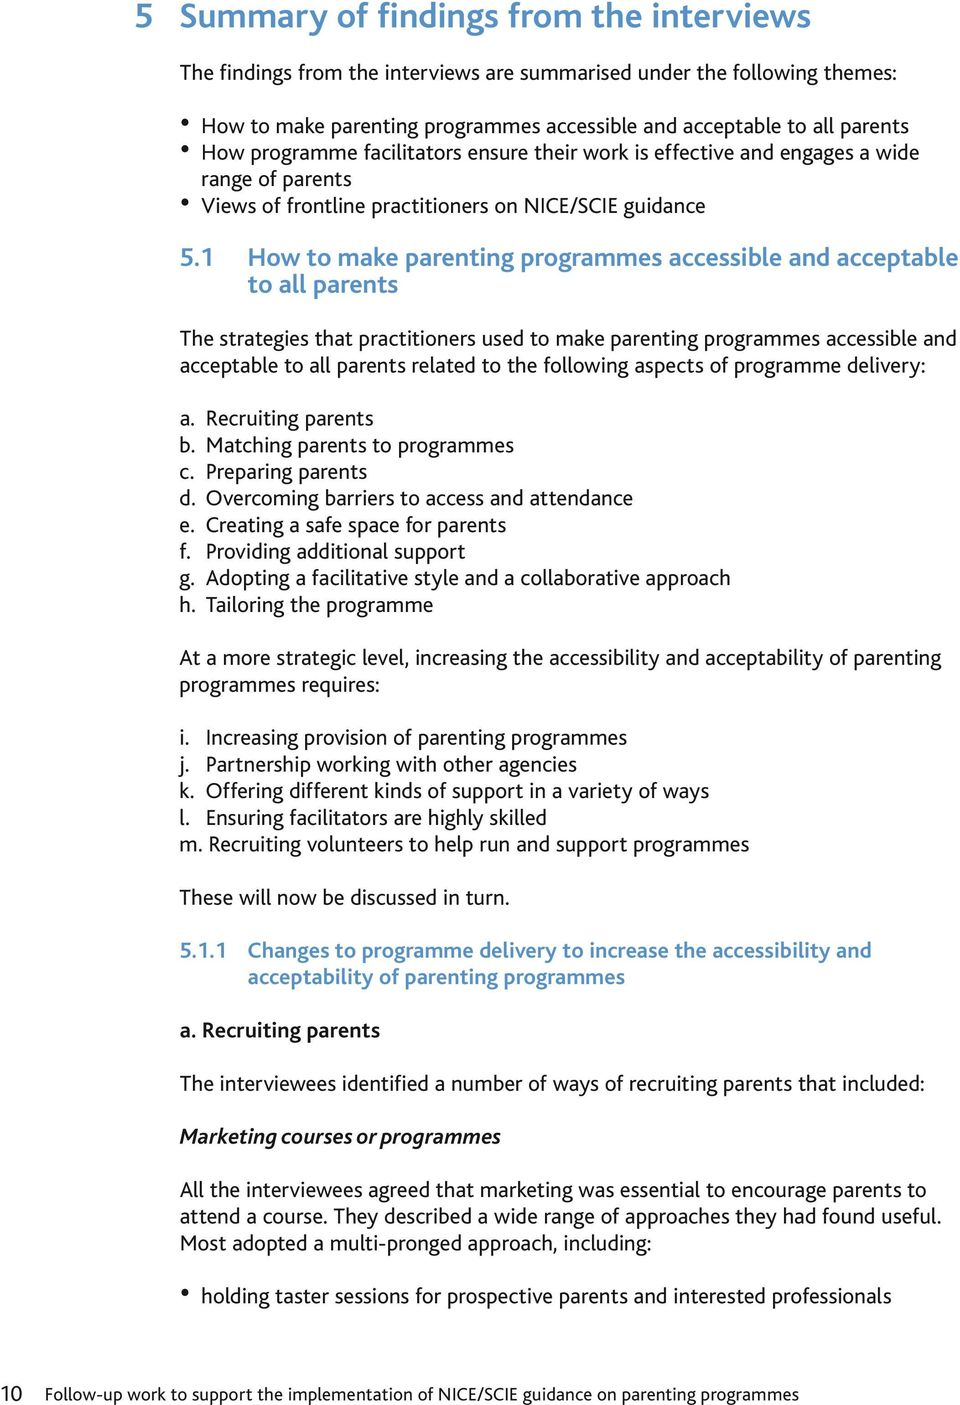 1 How to make parenting programmes accessible and acceptable to all parents The strategies that practitioners used to make parenting programmes accessible and acceptable to all parents related to the